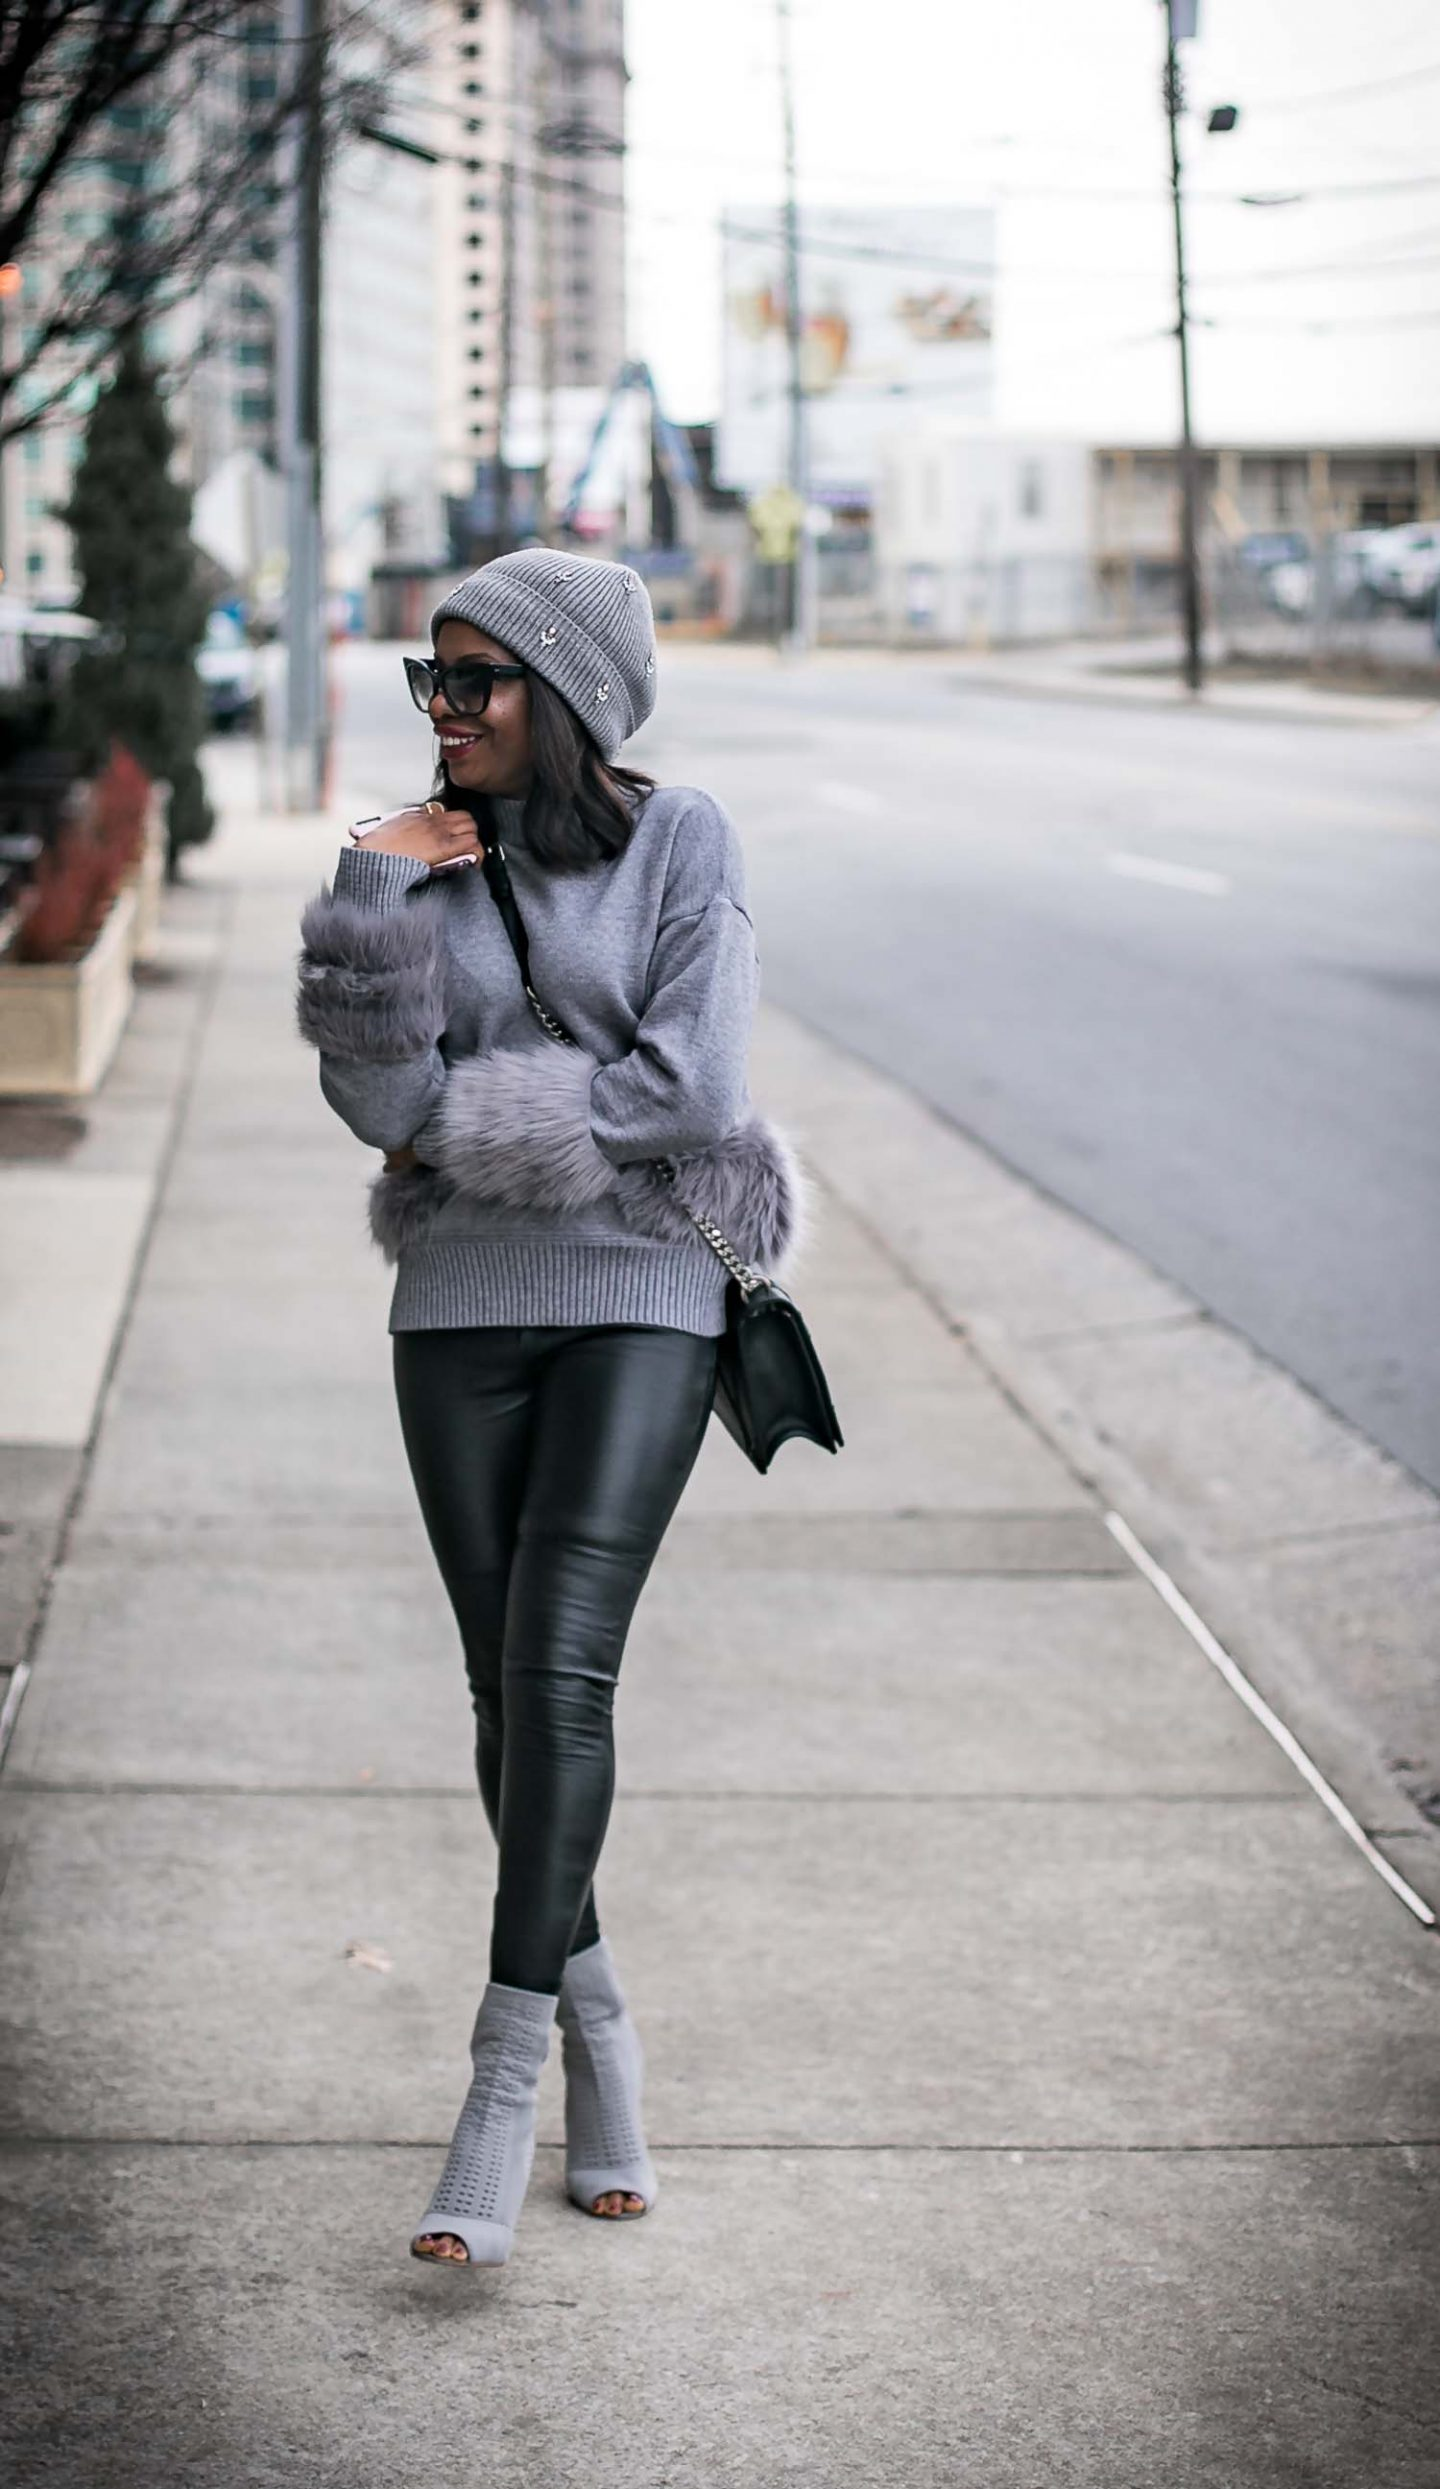 bcc4d66cf16506 In today's look I matched my pair which is made out of lambskin with a fur  detailed sweater. Lambskin pants are extremely thin, making them flexible  and ...